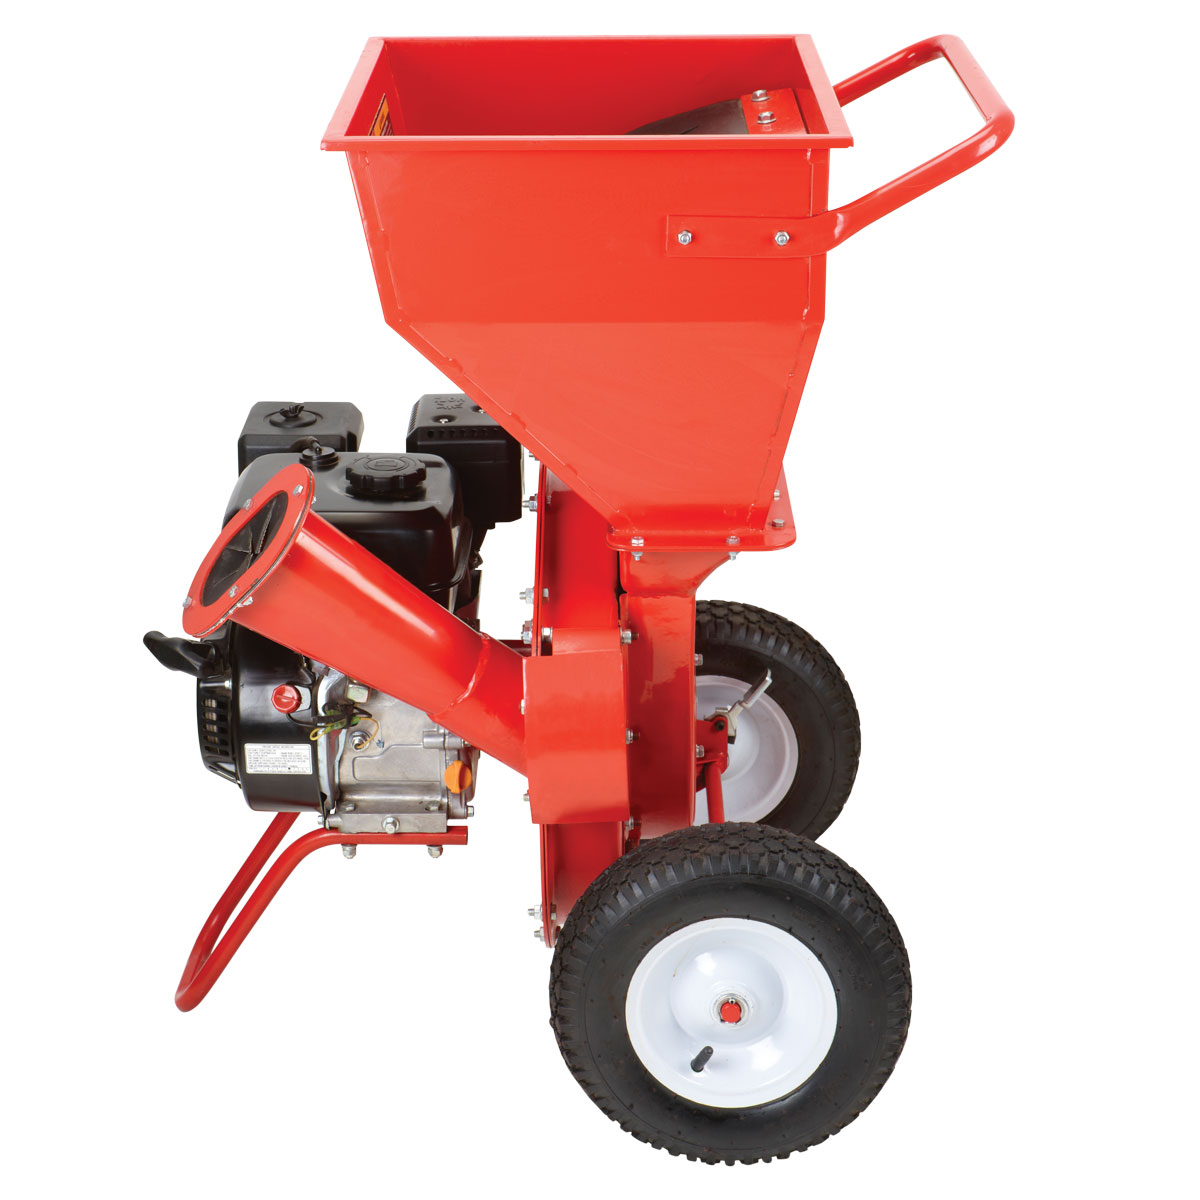 Yard Waste Chipper Shredder